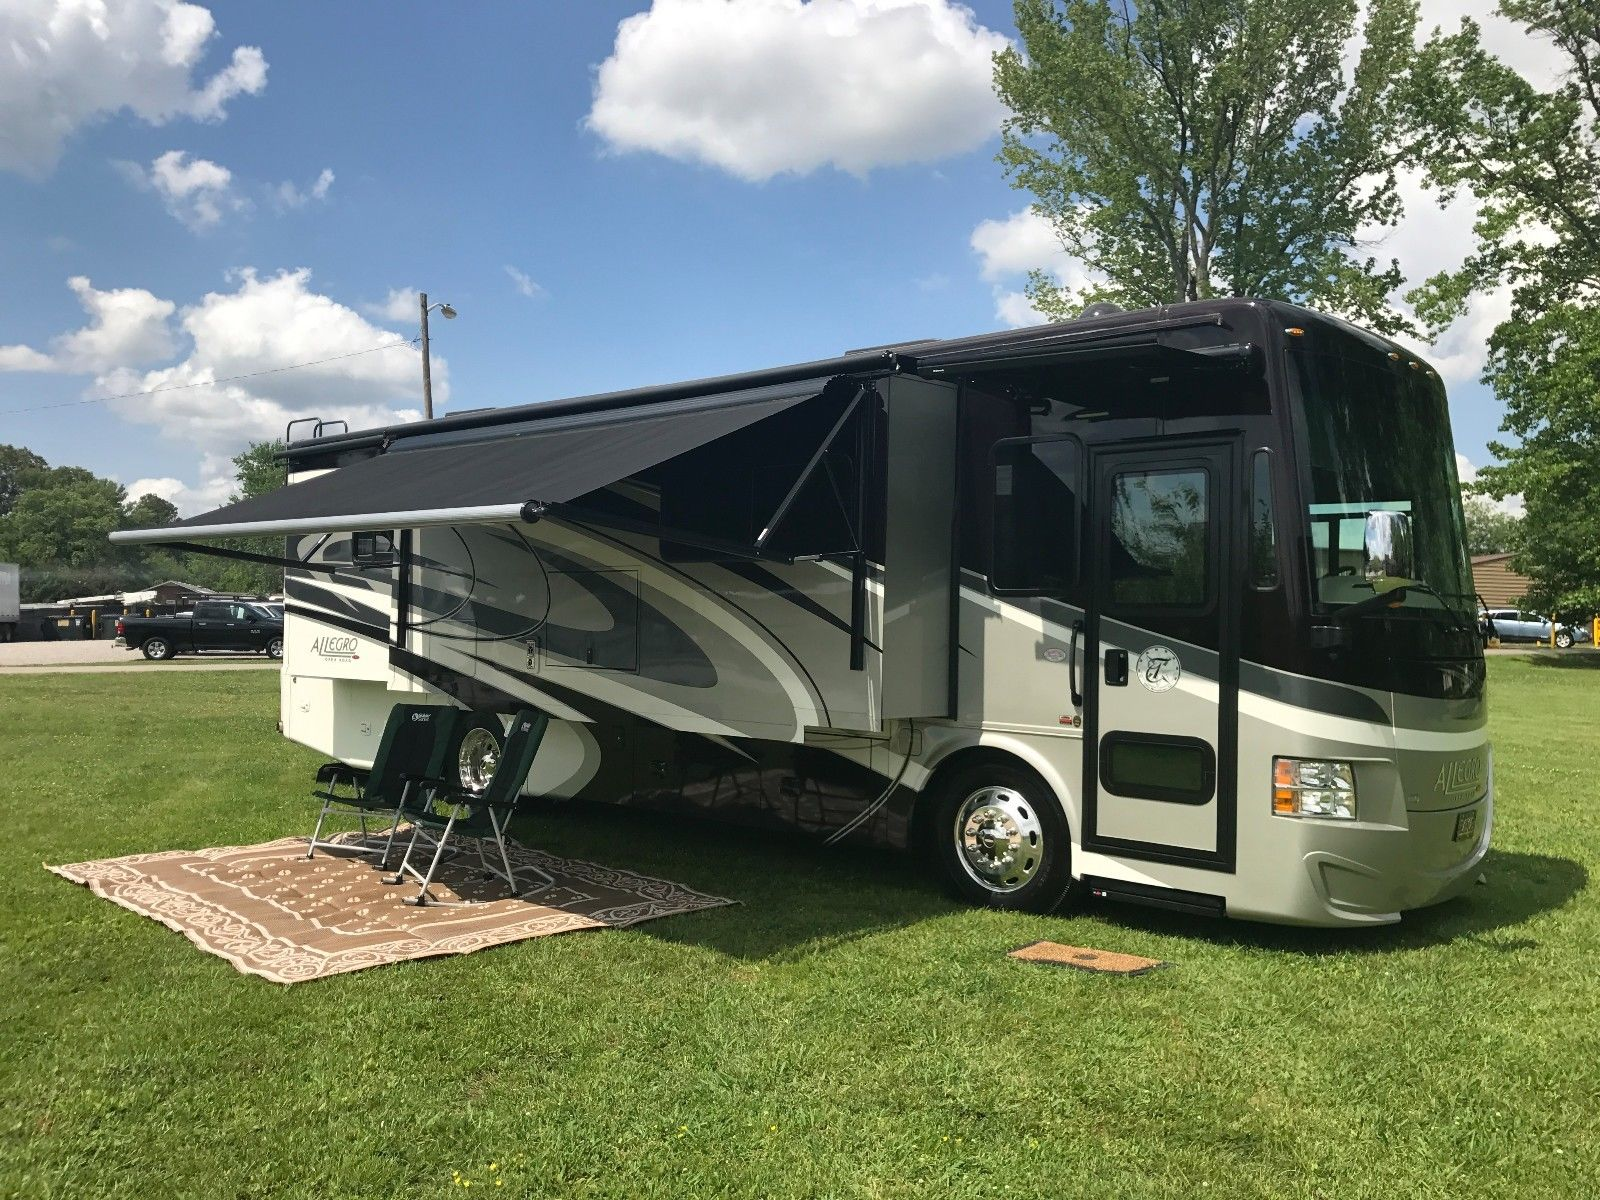 Rv Campers For Sale >> Low miles 2016 Allegro Red camper RV for sale